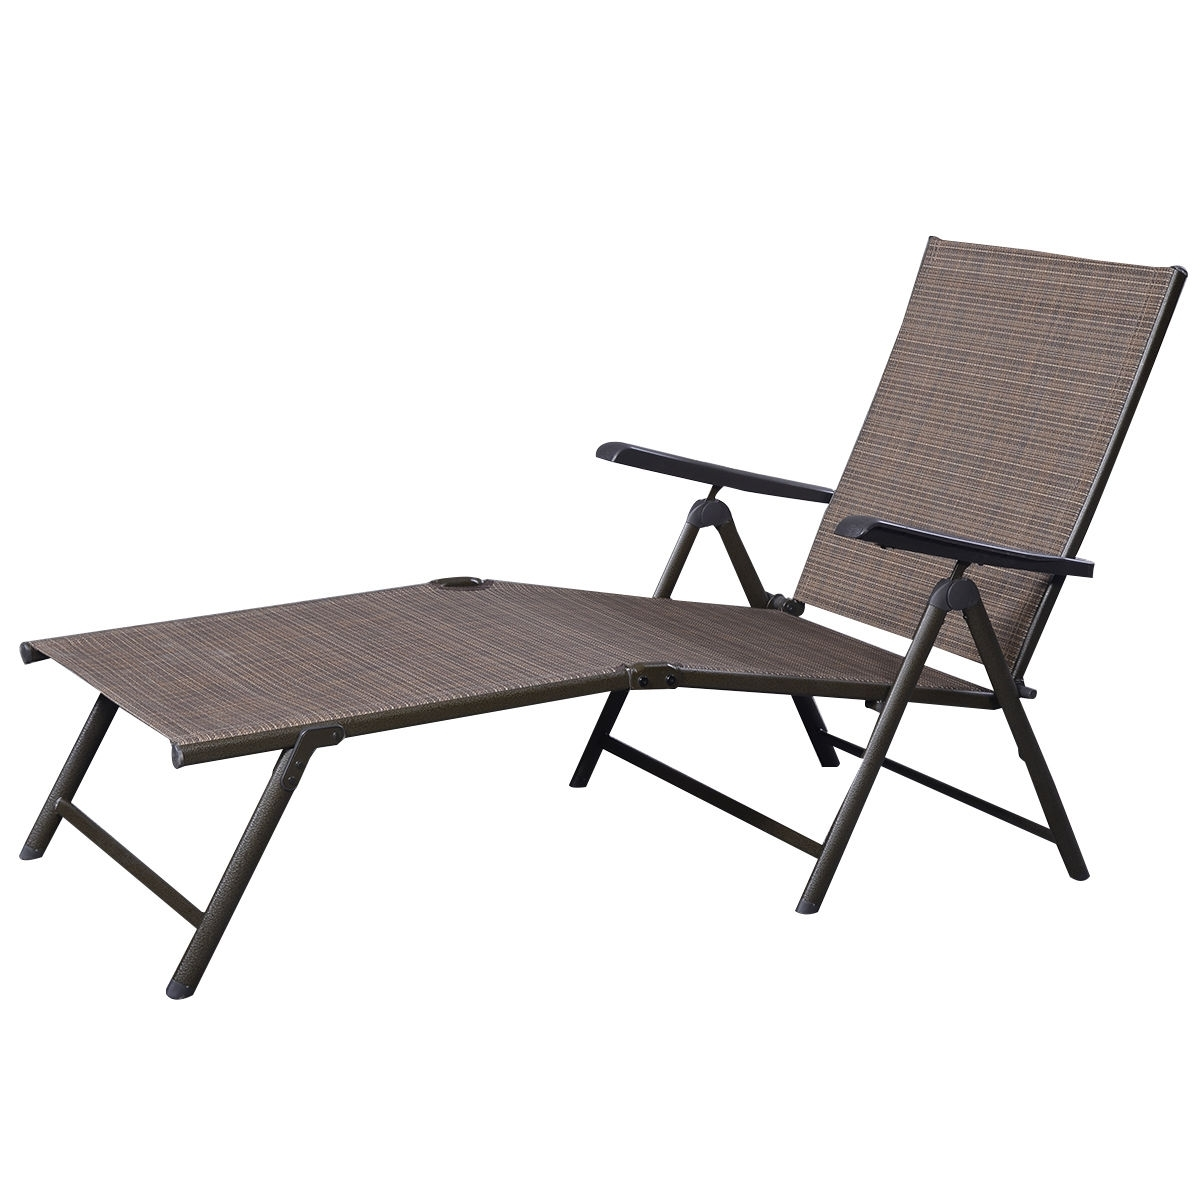 Pool Chaise Lounge Chairs Throughout Famous Outdoor Adjustable Chaise Lounge Chair – Sunloungers – Outdoor (View 11 of 15)